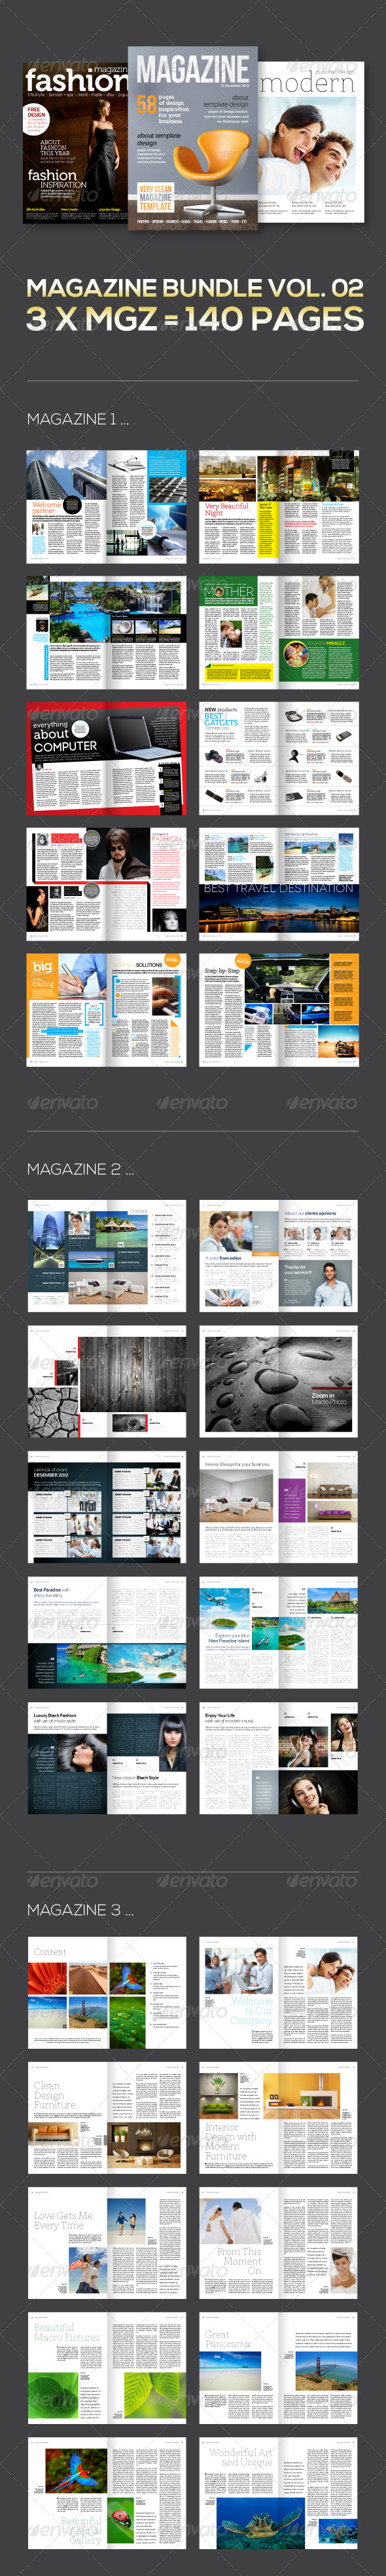 GraphicRiver 3 X Magazine Collection Mgz Bundle Vol 02 5545423